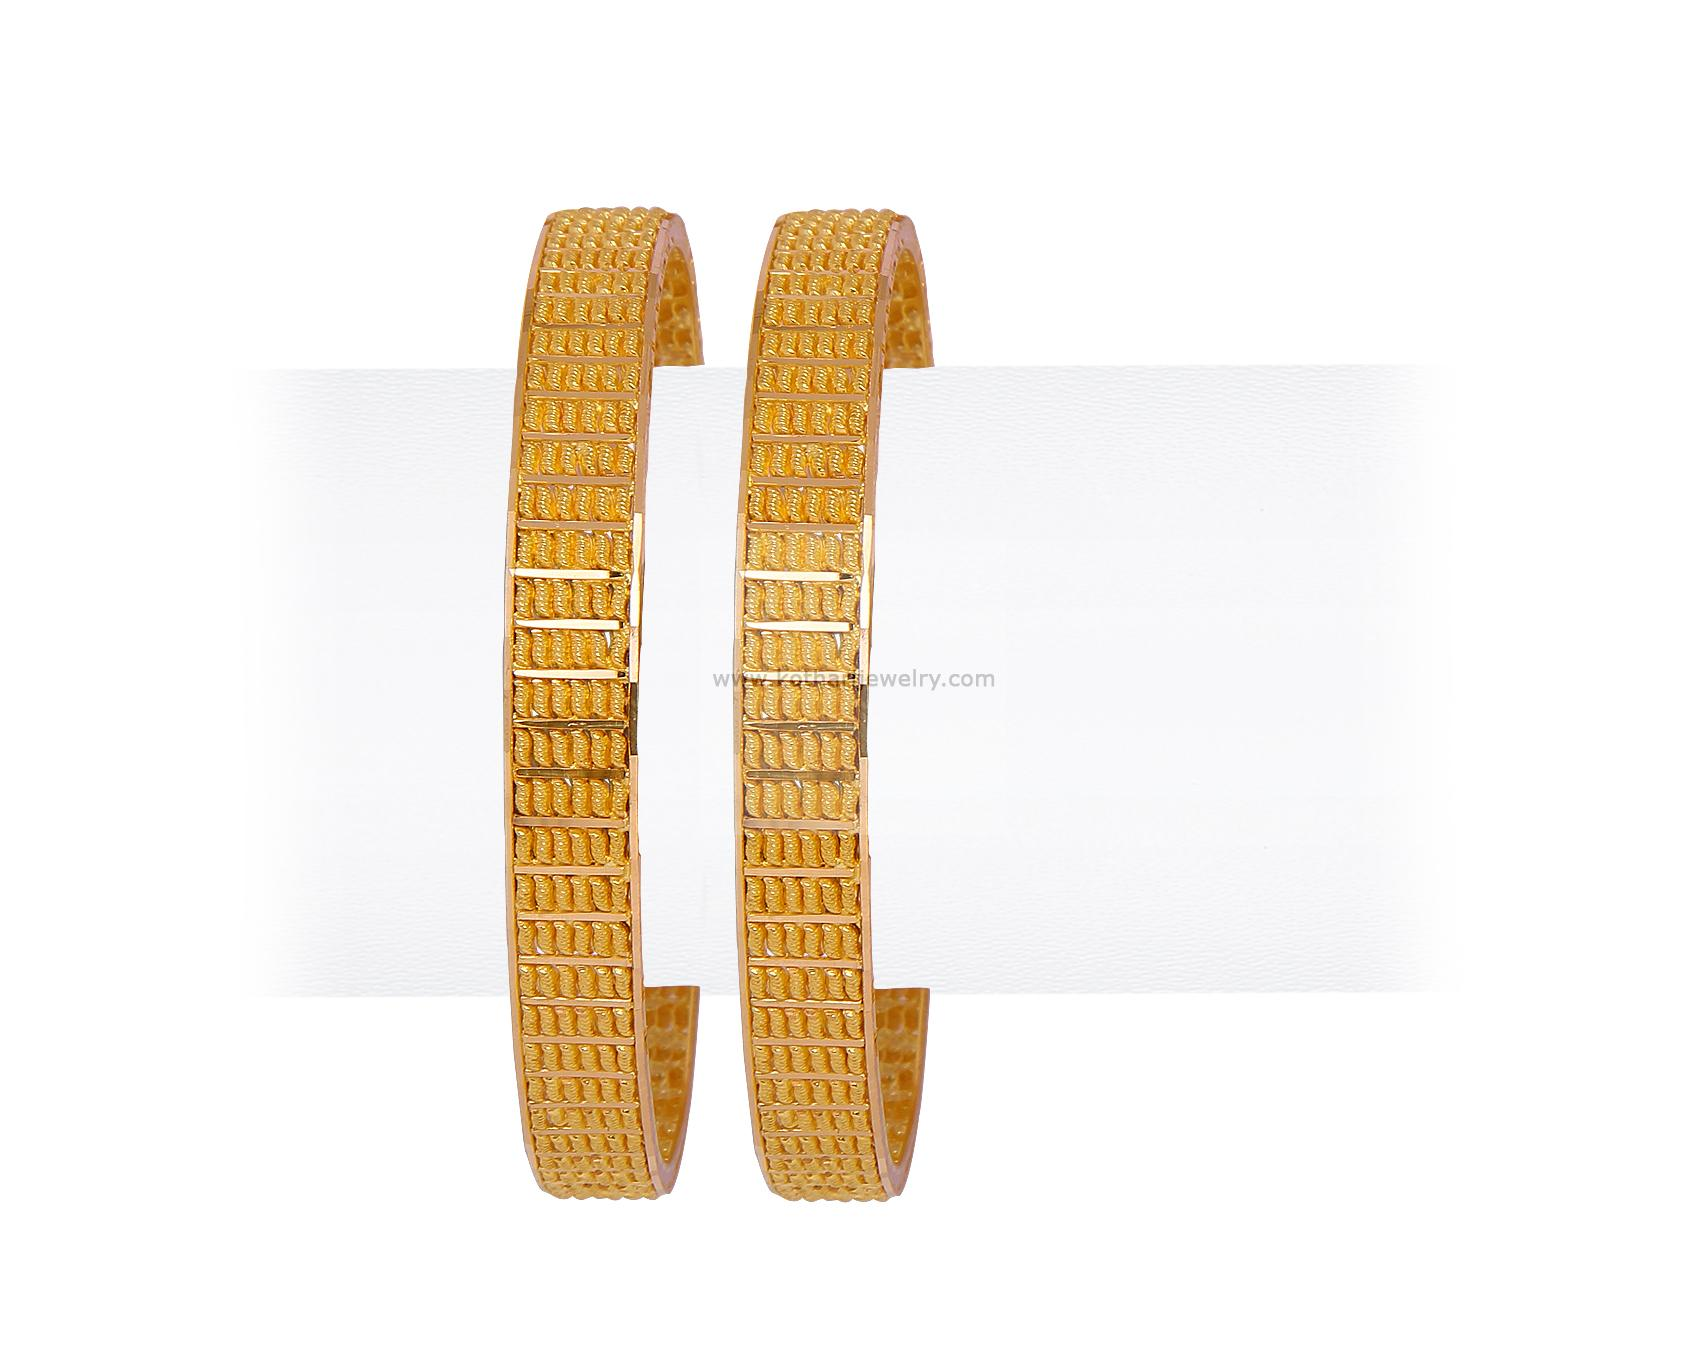 k tiffany karat yellow by estate gold bangle co bangles ltd product bracelet s bracelets